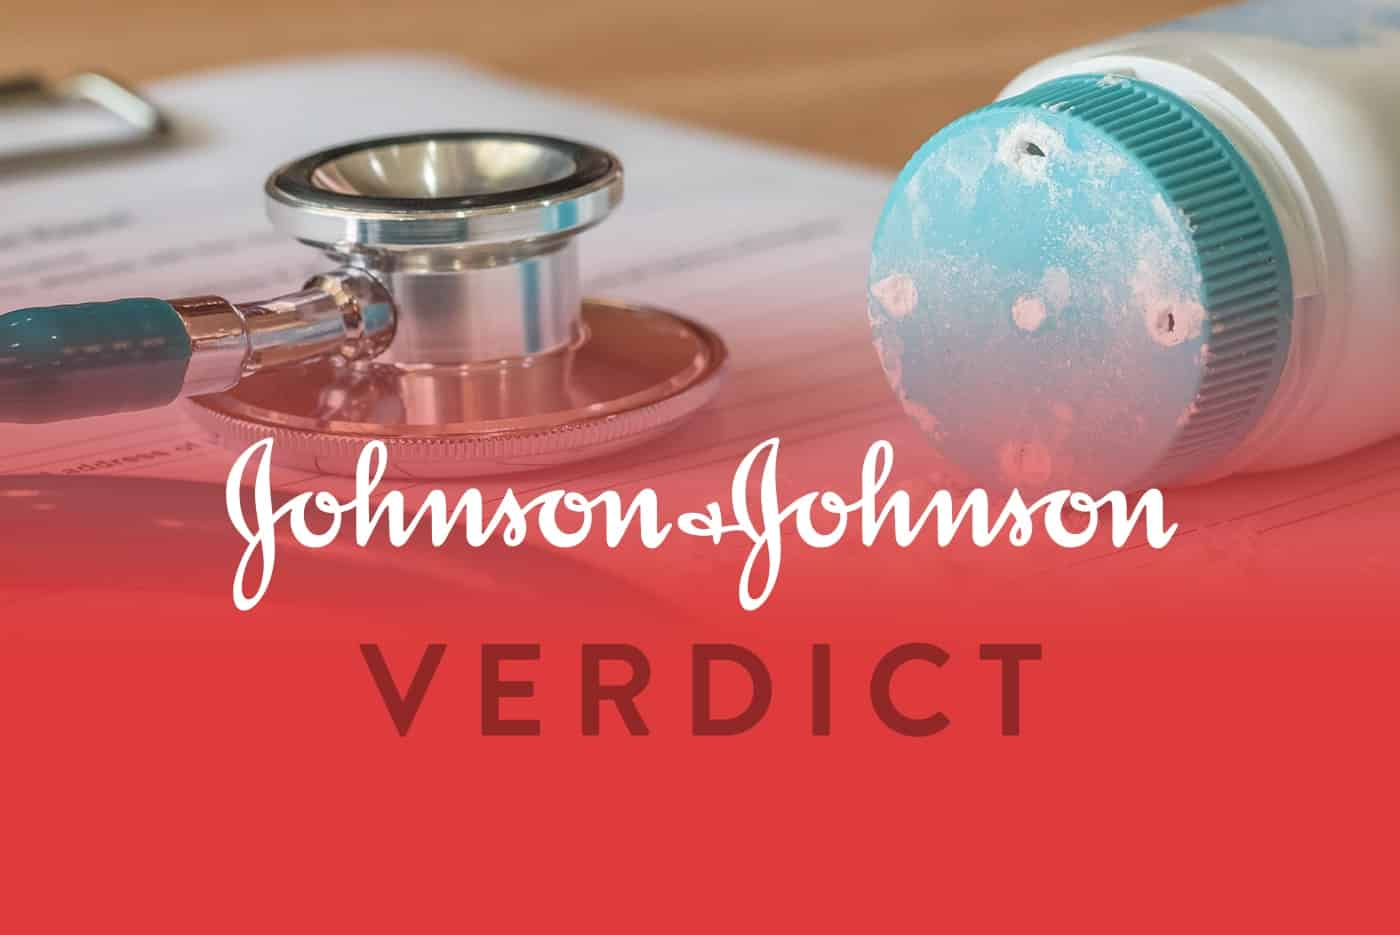 Johnson & Johnson Asbestos Verdict